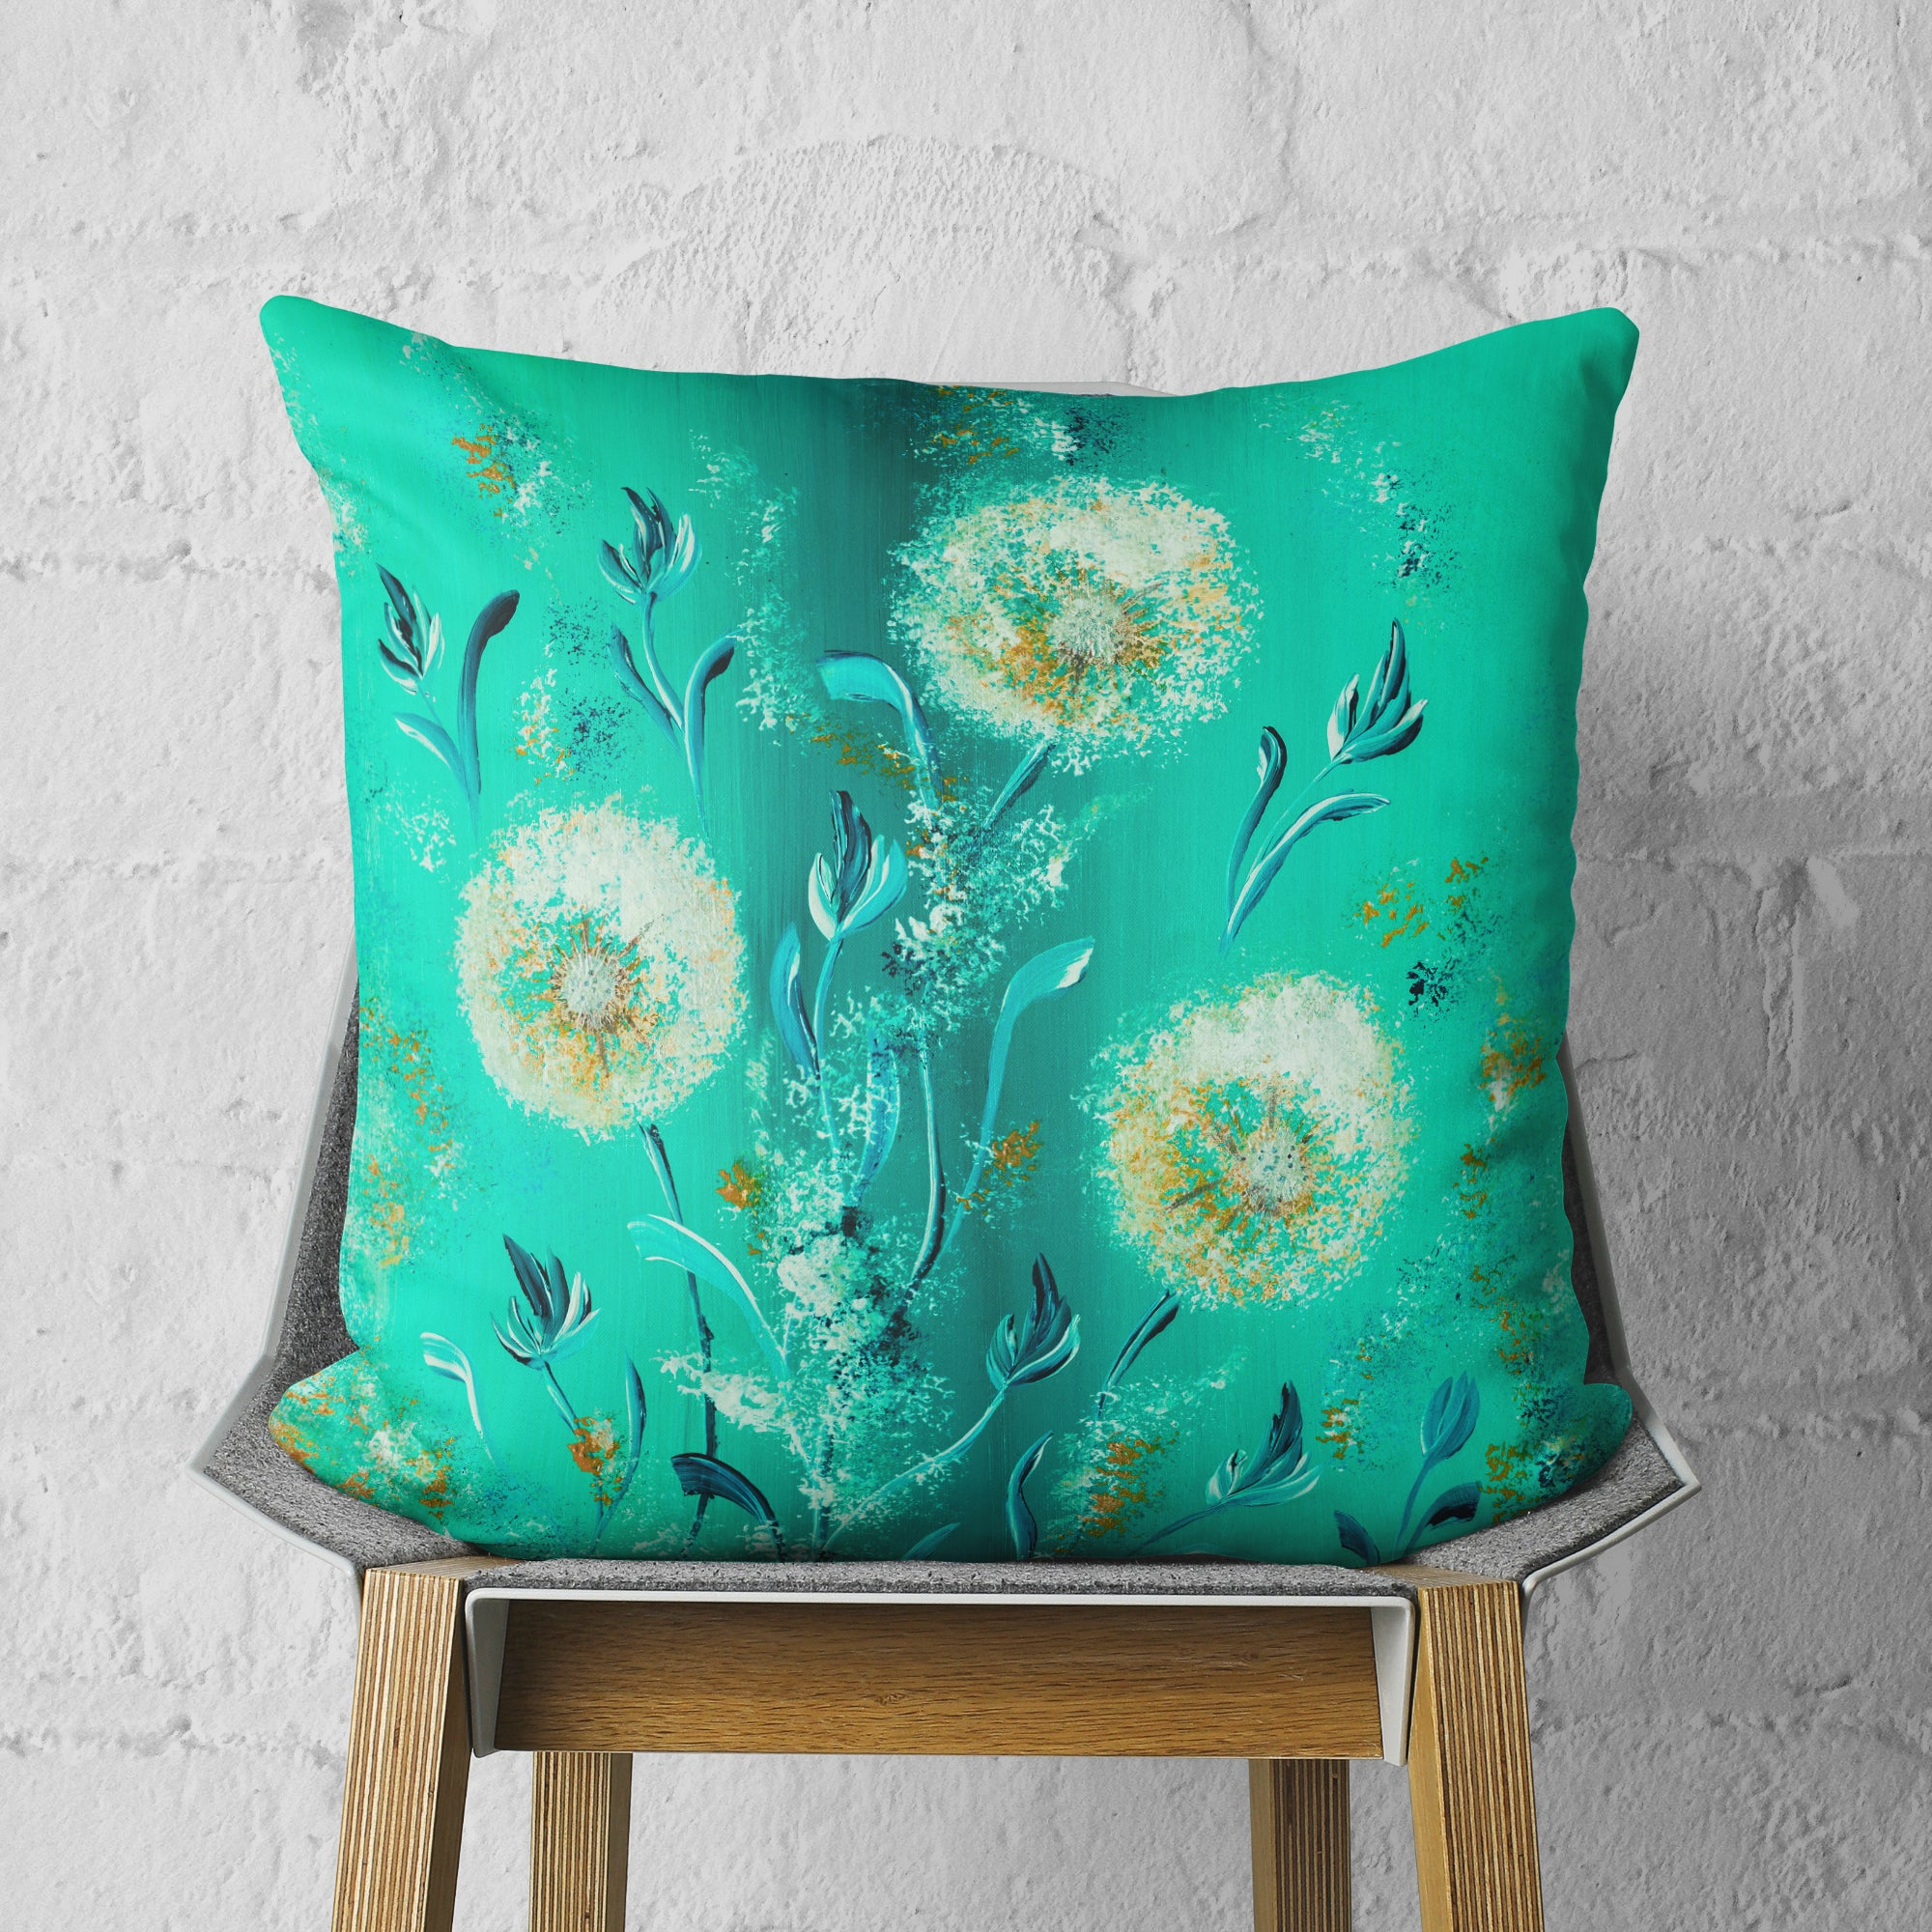 Turquoise throw pillow on chair